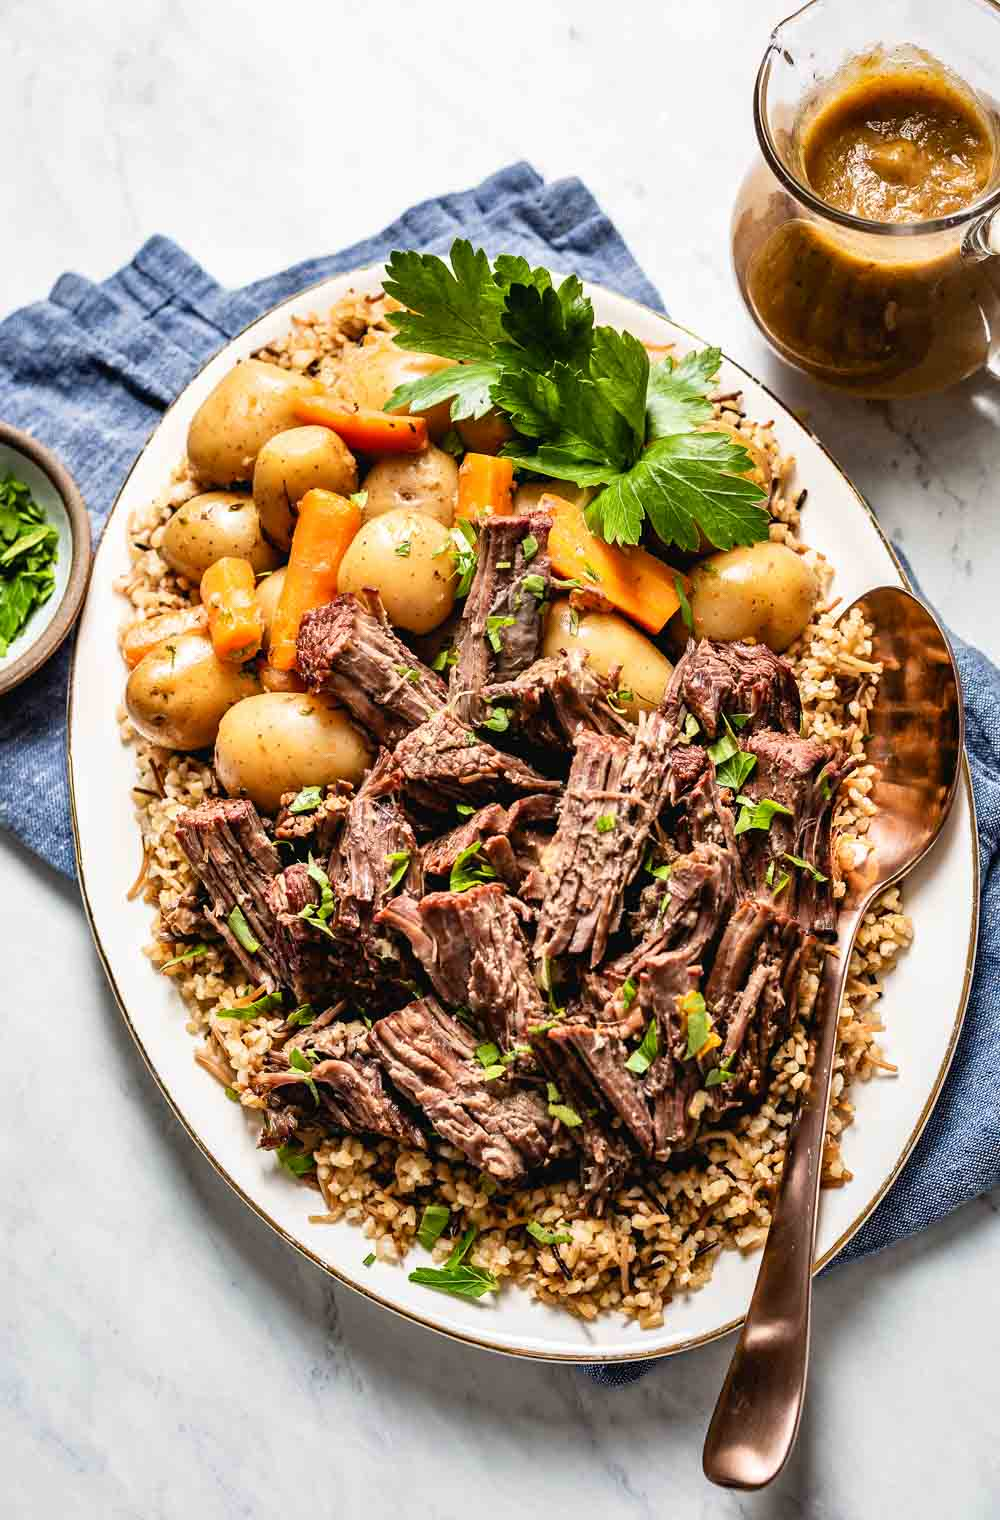 Shredded Instant Pot Chuck Roast (aka London Broil) placed on a plate along with potatoes and carrots photographed from the top view.